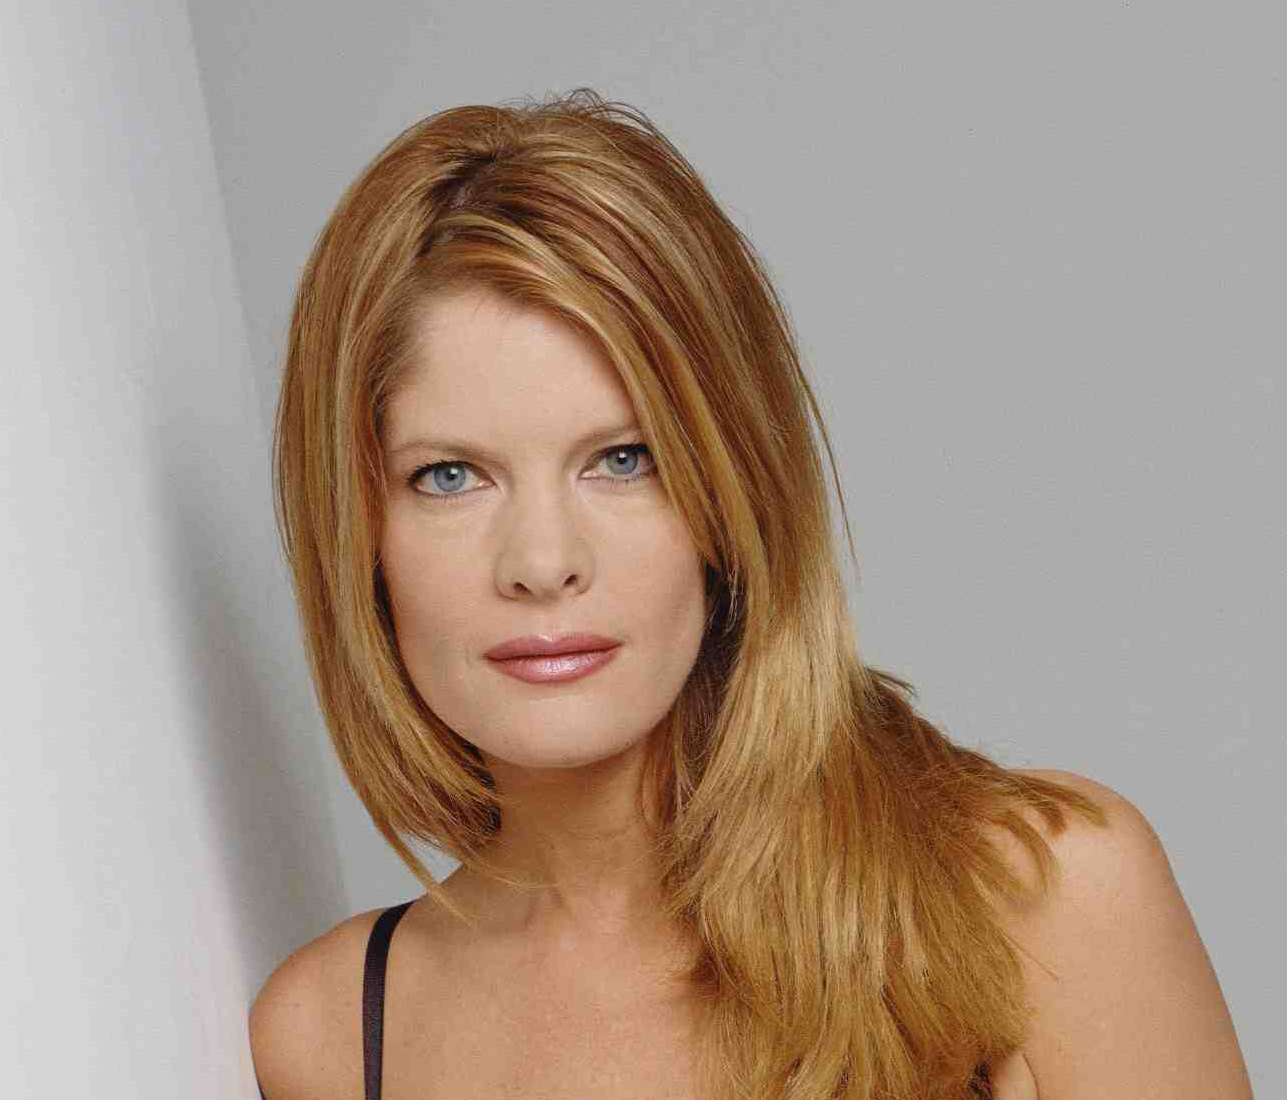 File:Michelle Stafford photo1 cropped.jpg - Wikimedia Commons